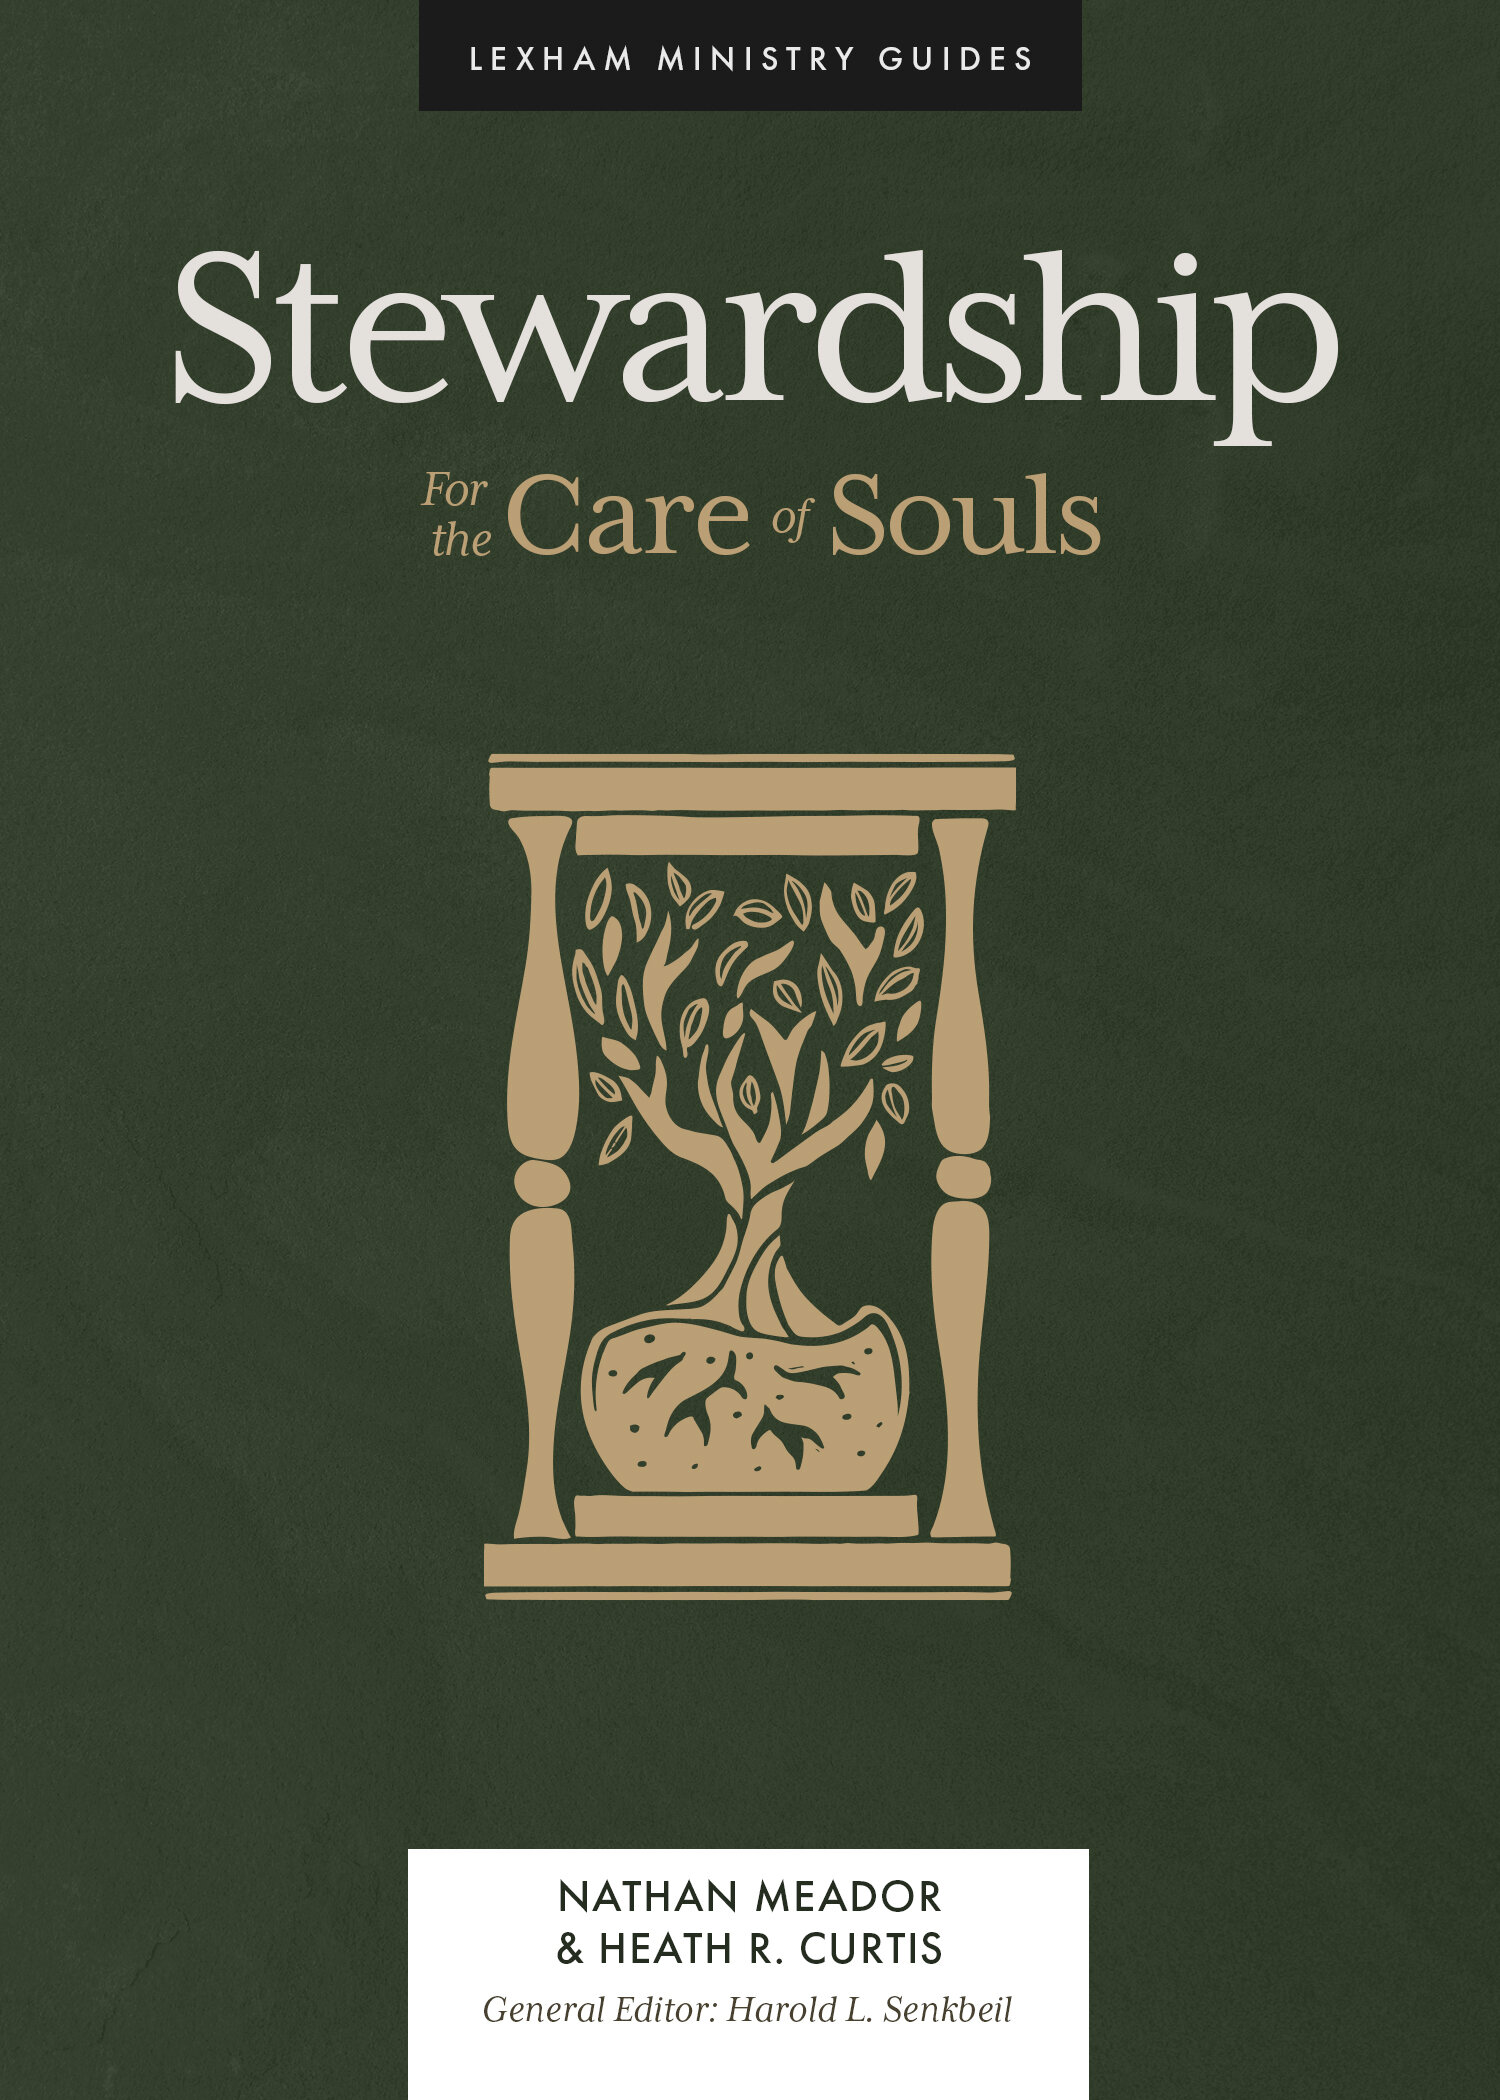 Stewardship: For the Care of Souls